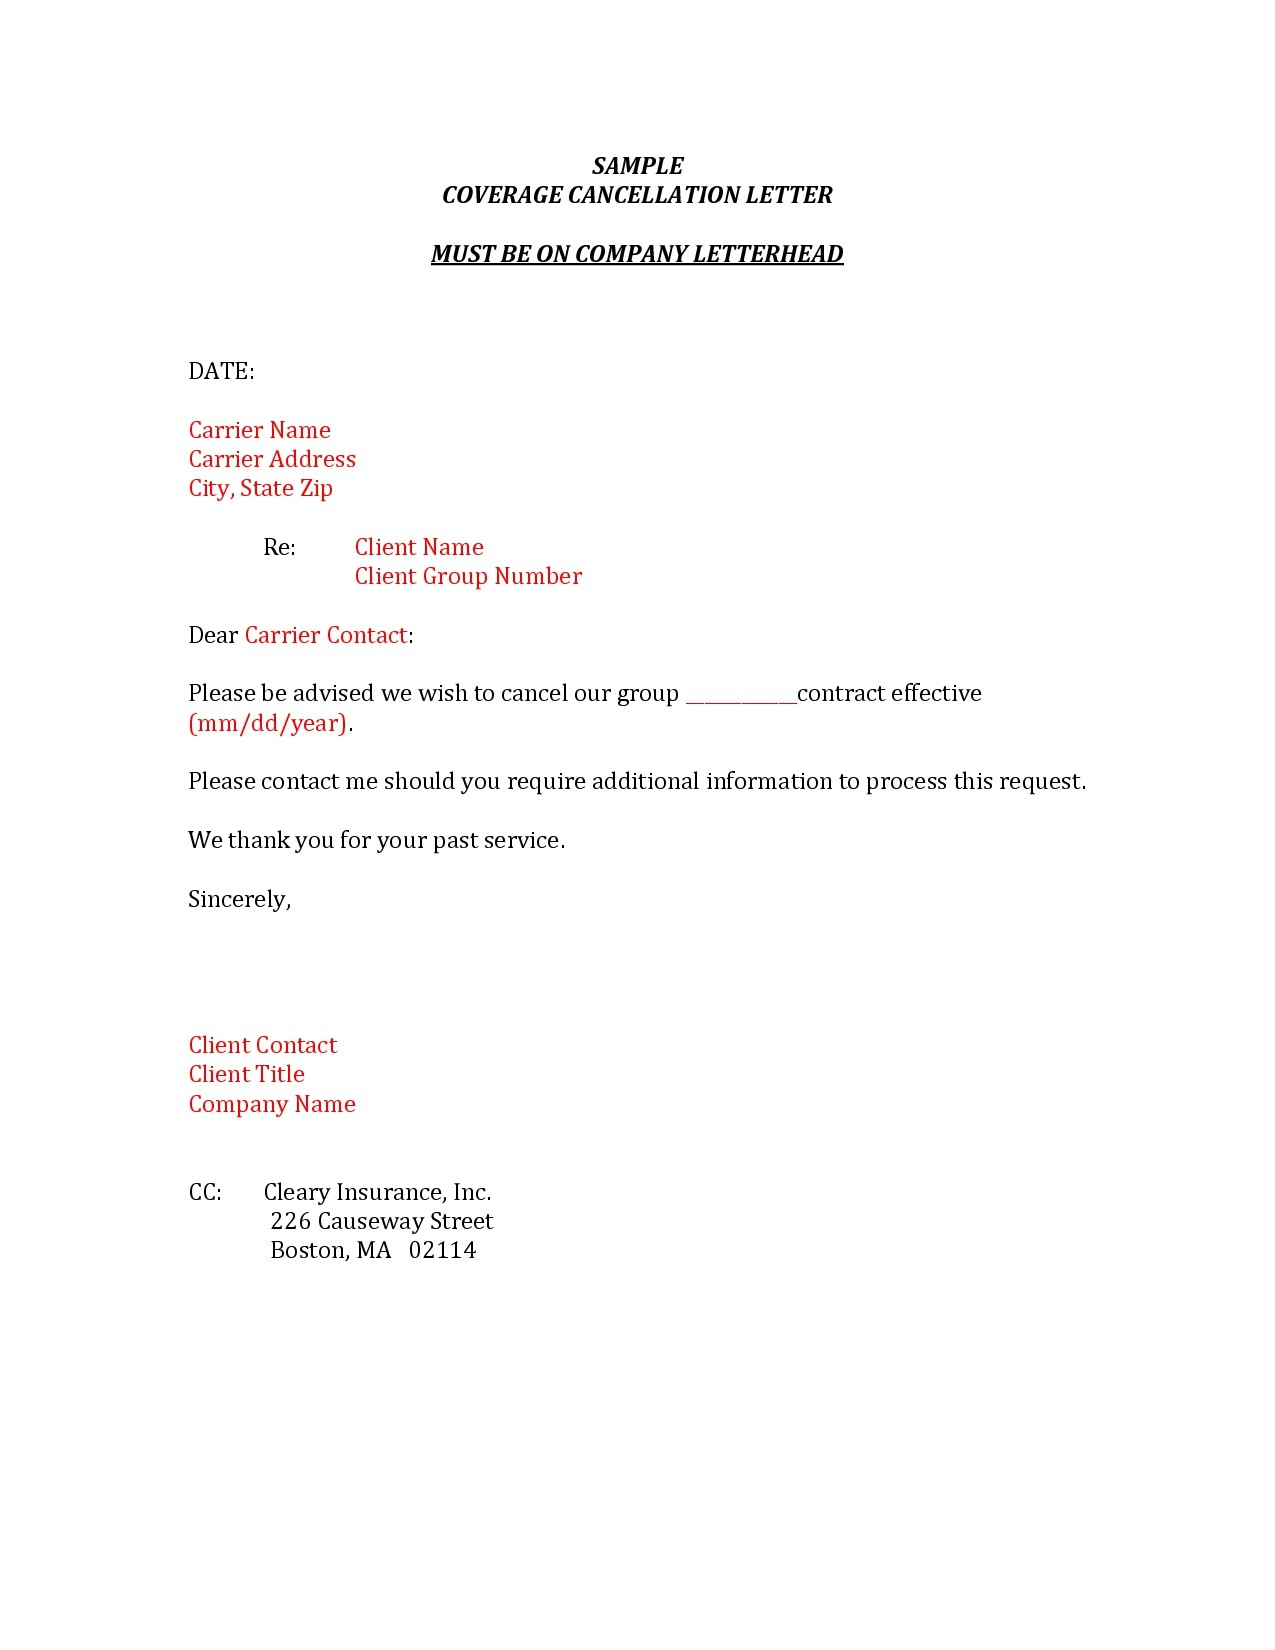 Car Insurance Cancellation Letter Template - Resume Letter format Archives Page 56 Of 106 Jameskilloran Co